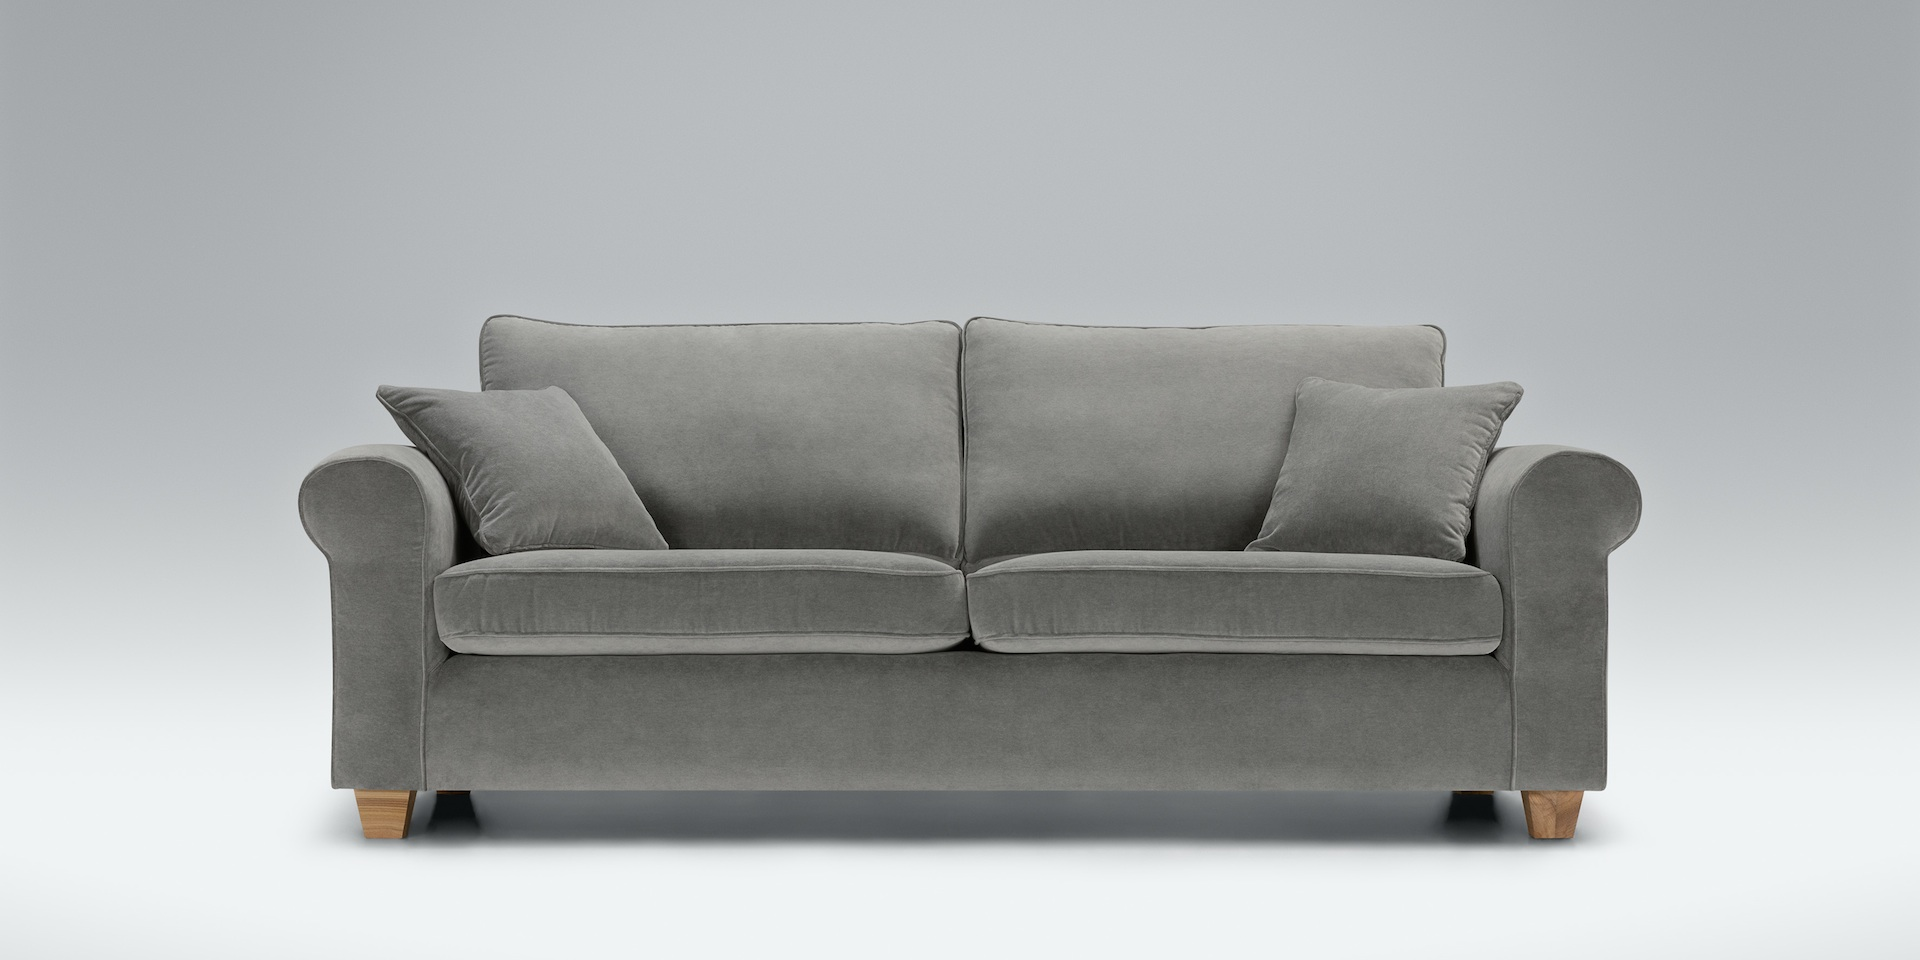 ROMANTIC_shadow_3seater_malibu_velvet_2_grey_1